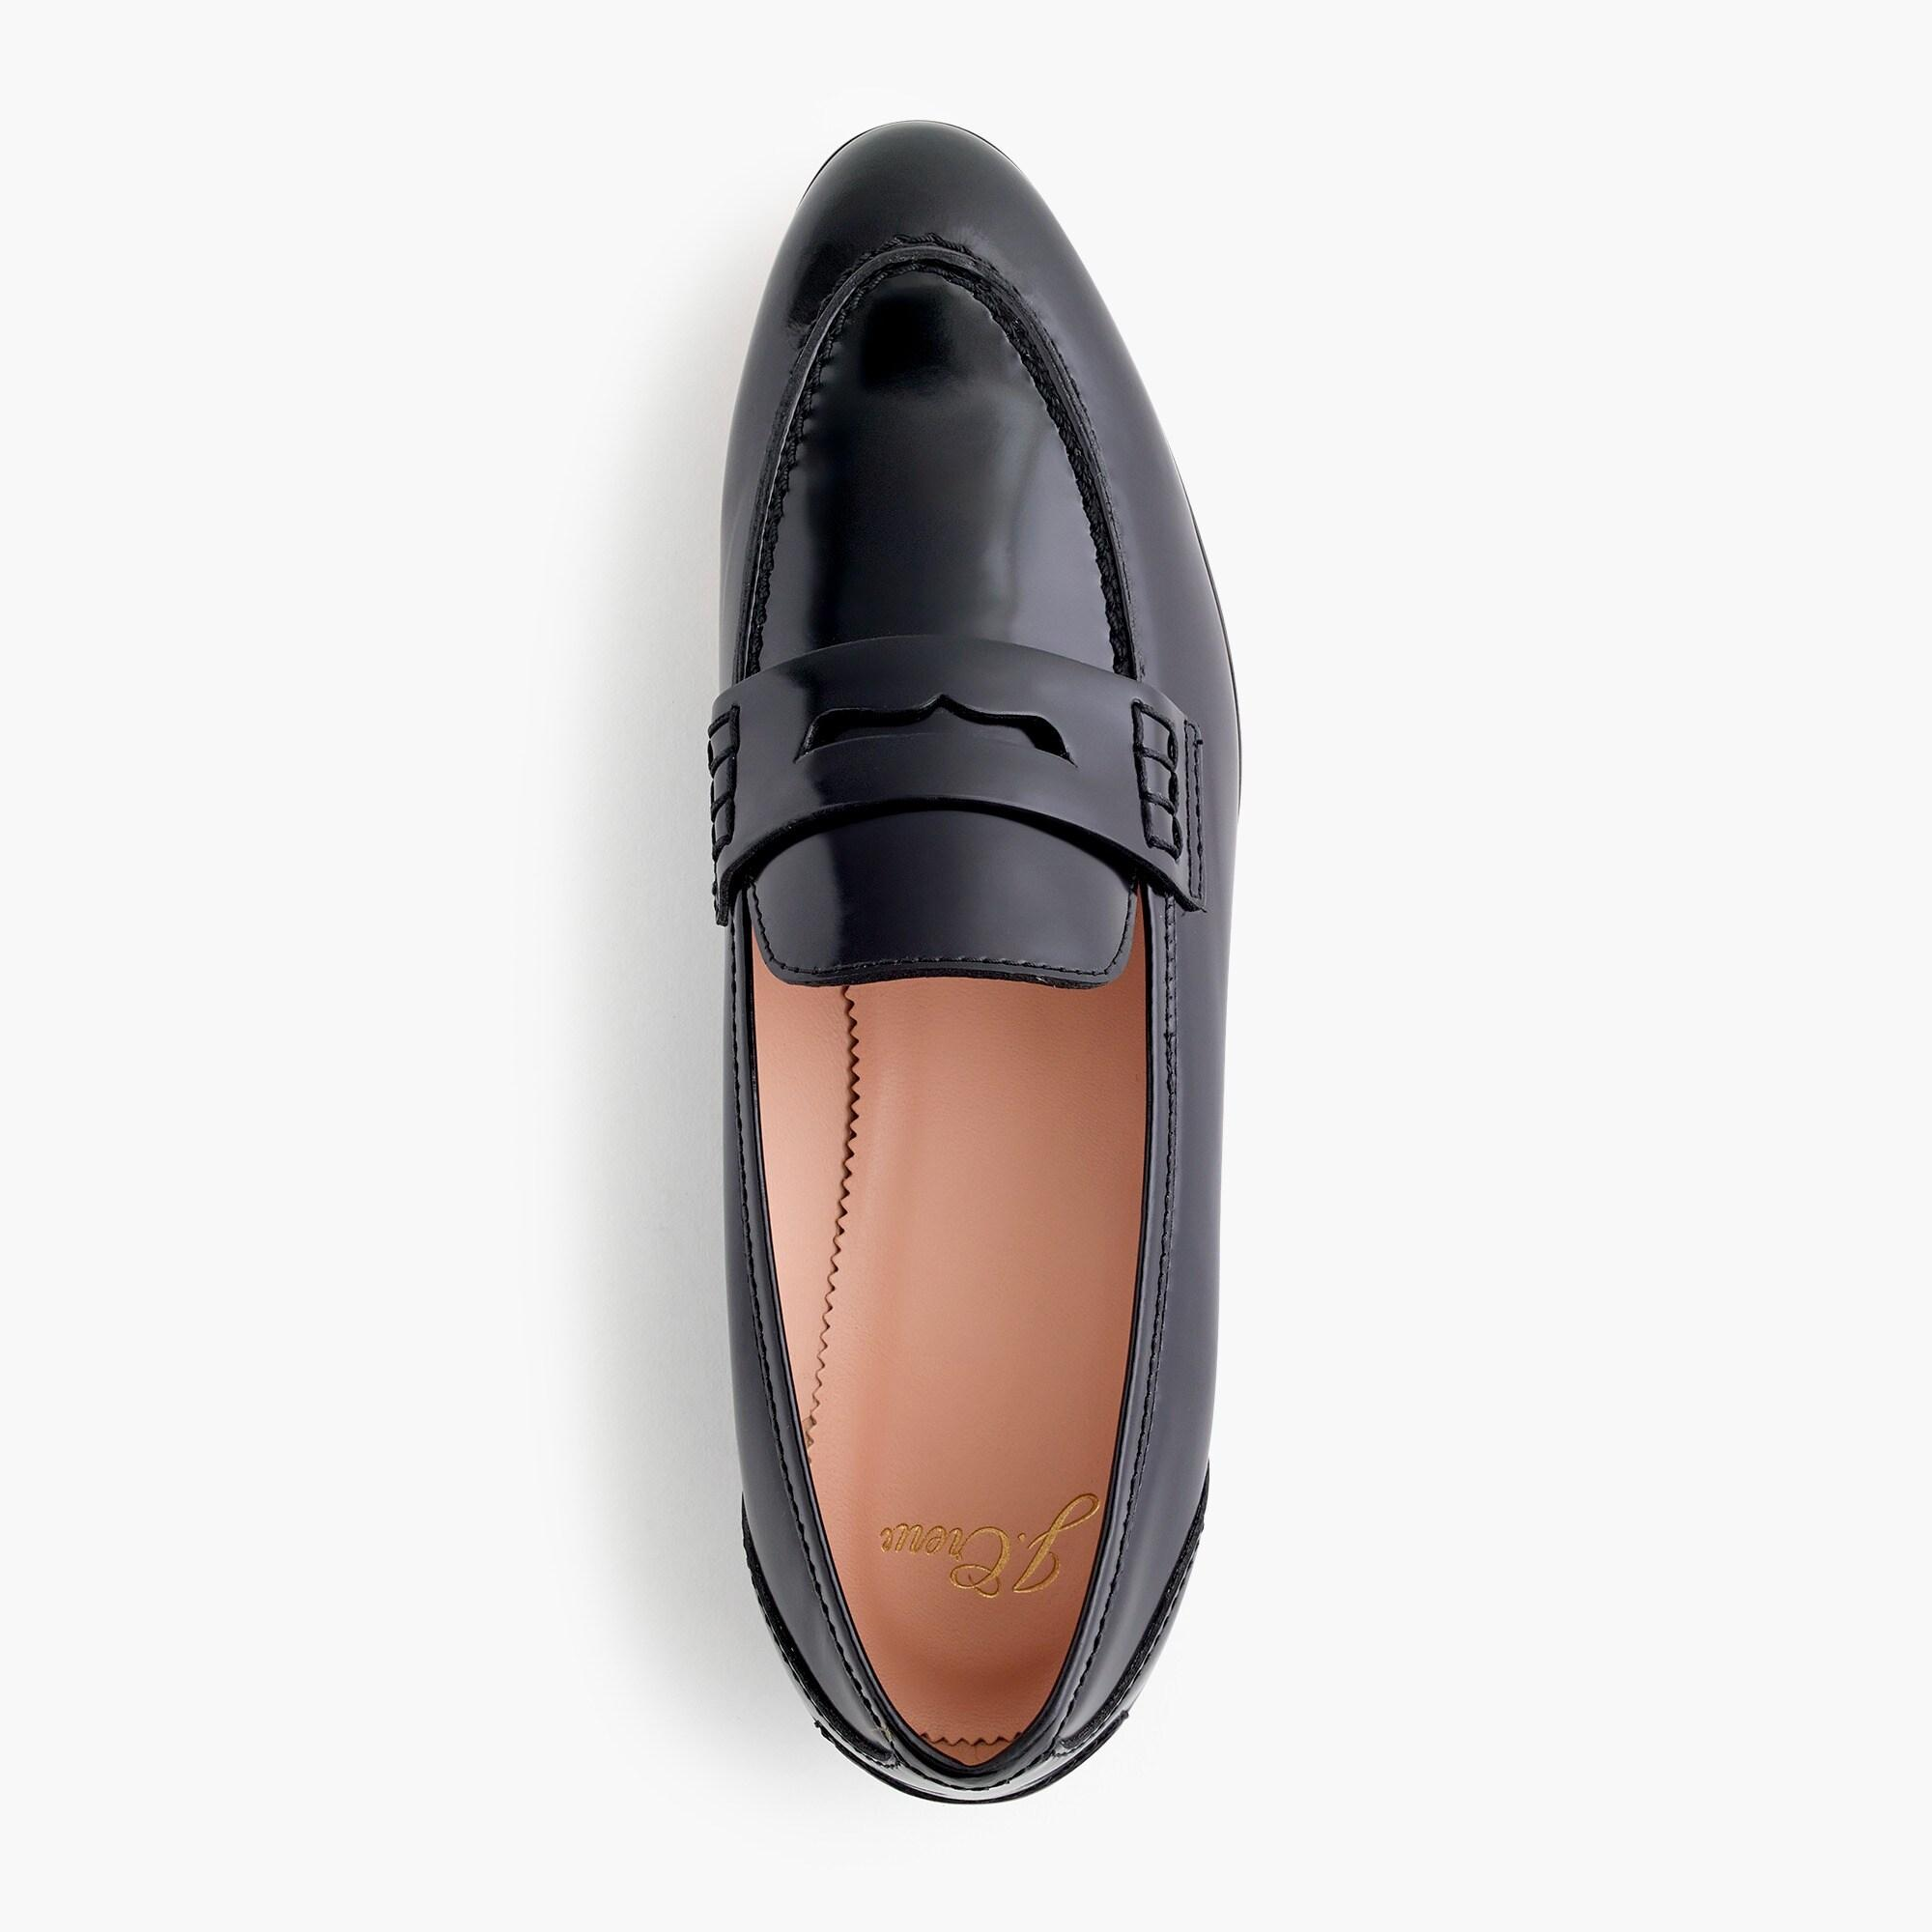 J.Crew Leather Academy Penny Loafers in Brown - Lyst